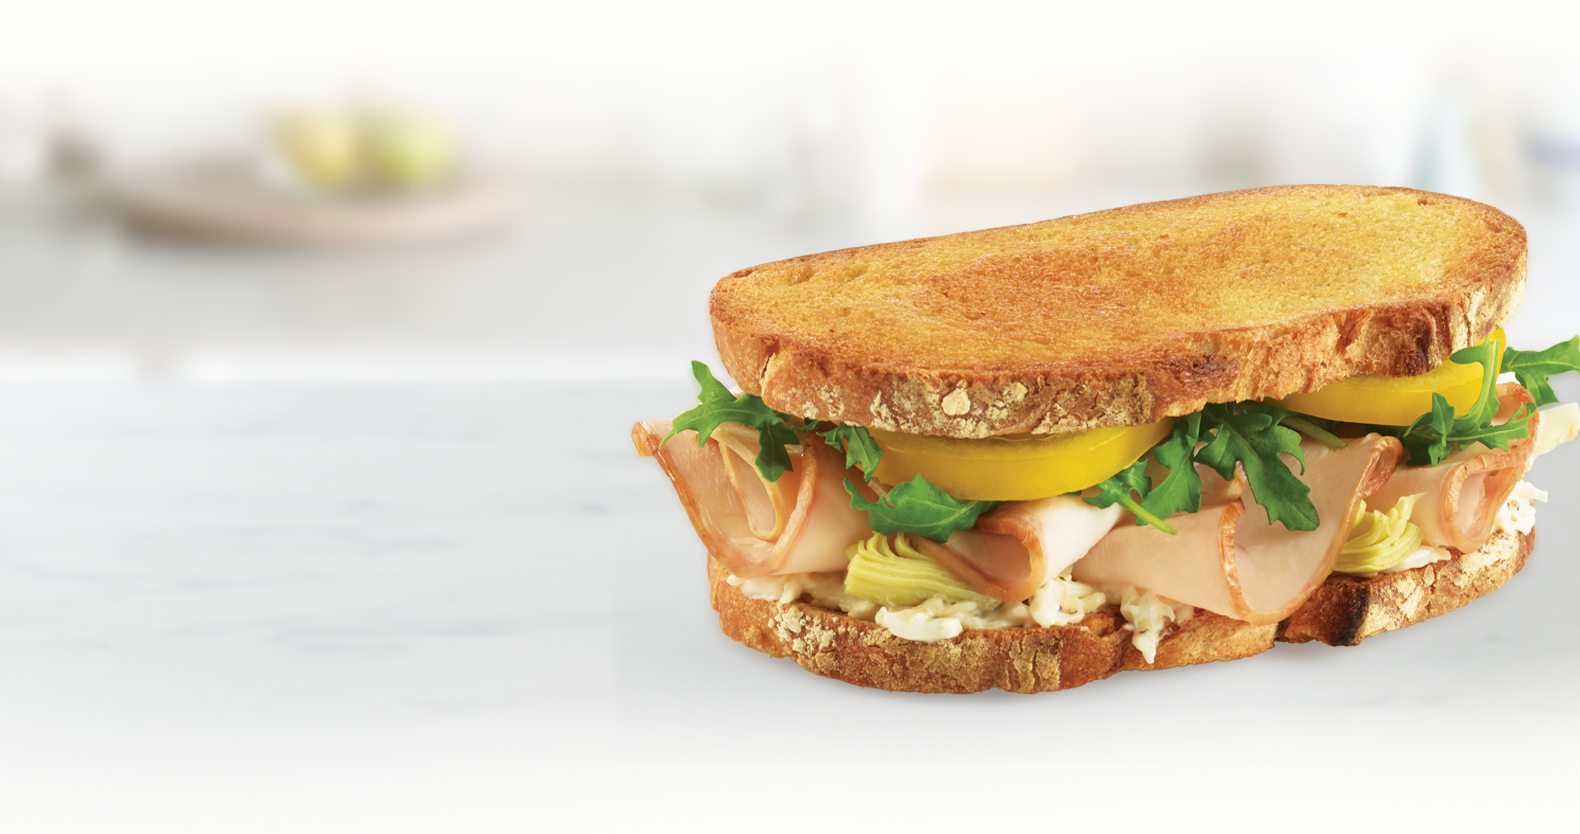 Artichoke-Asiago Turkey Sandwich